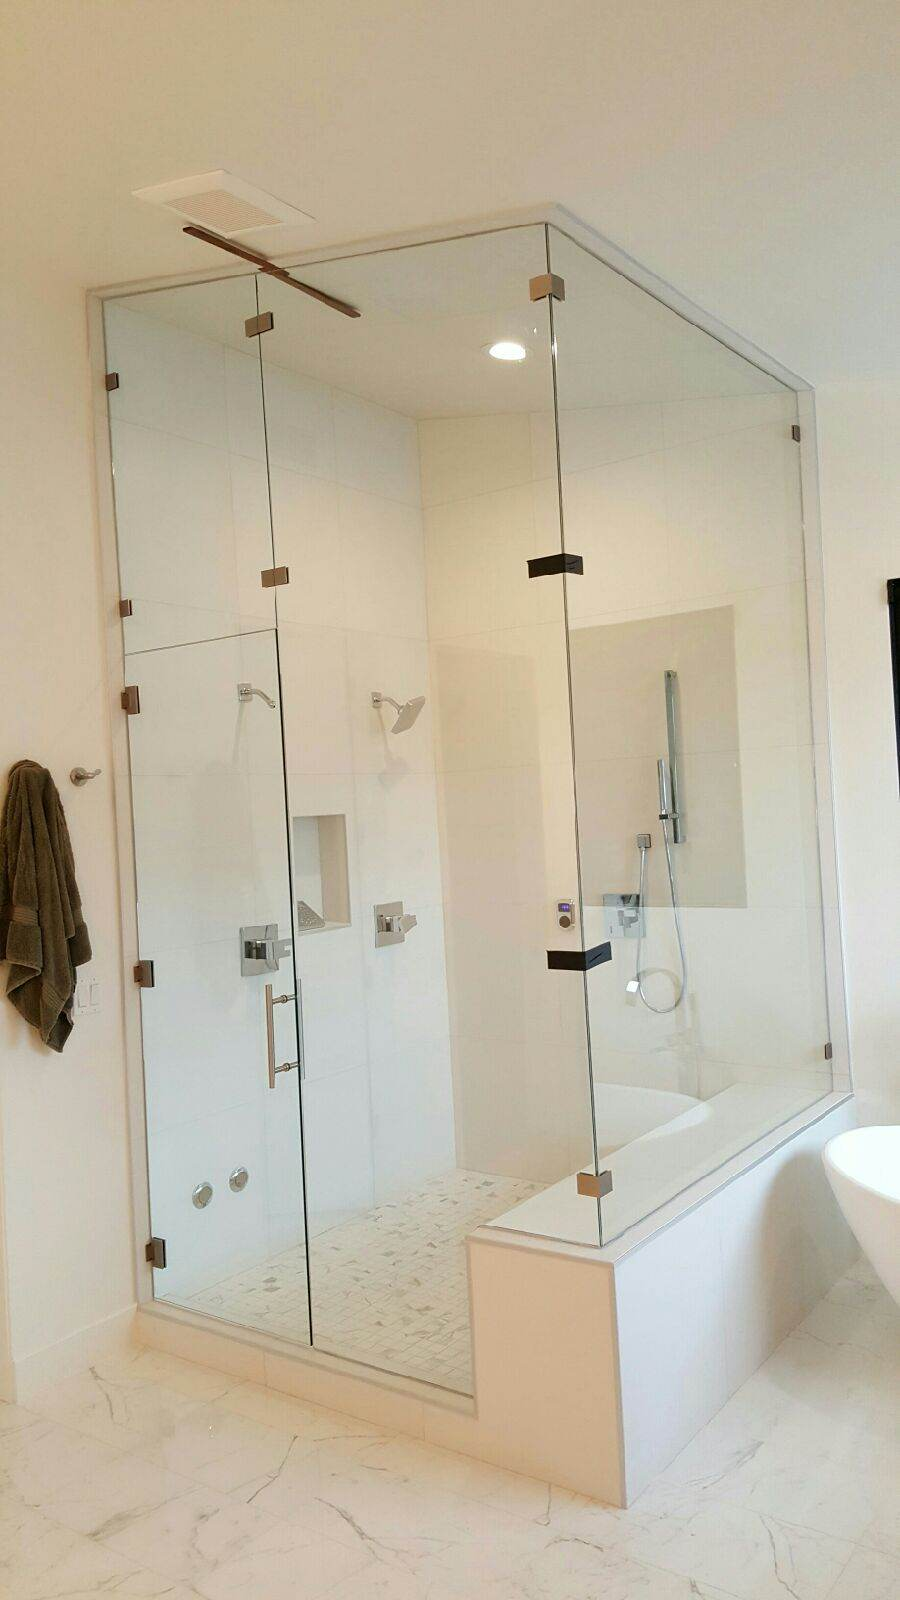 Shower Enclosures America - Cintinel.com